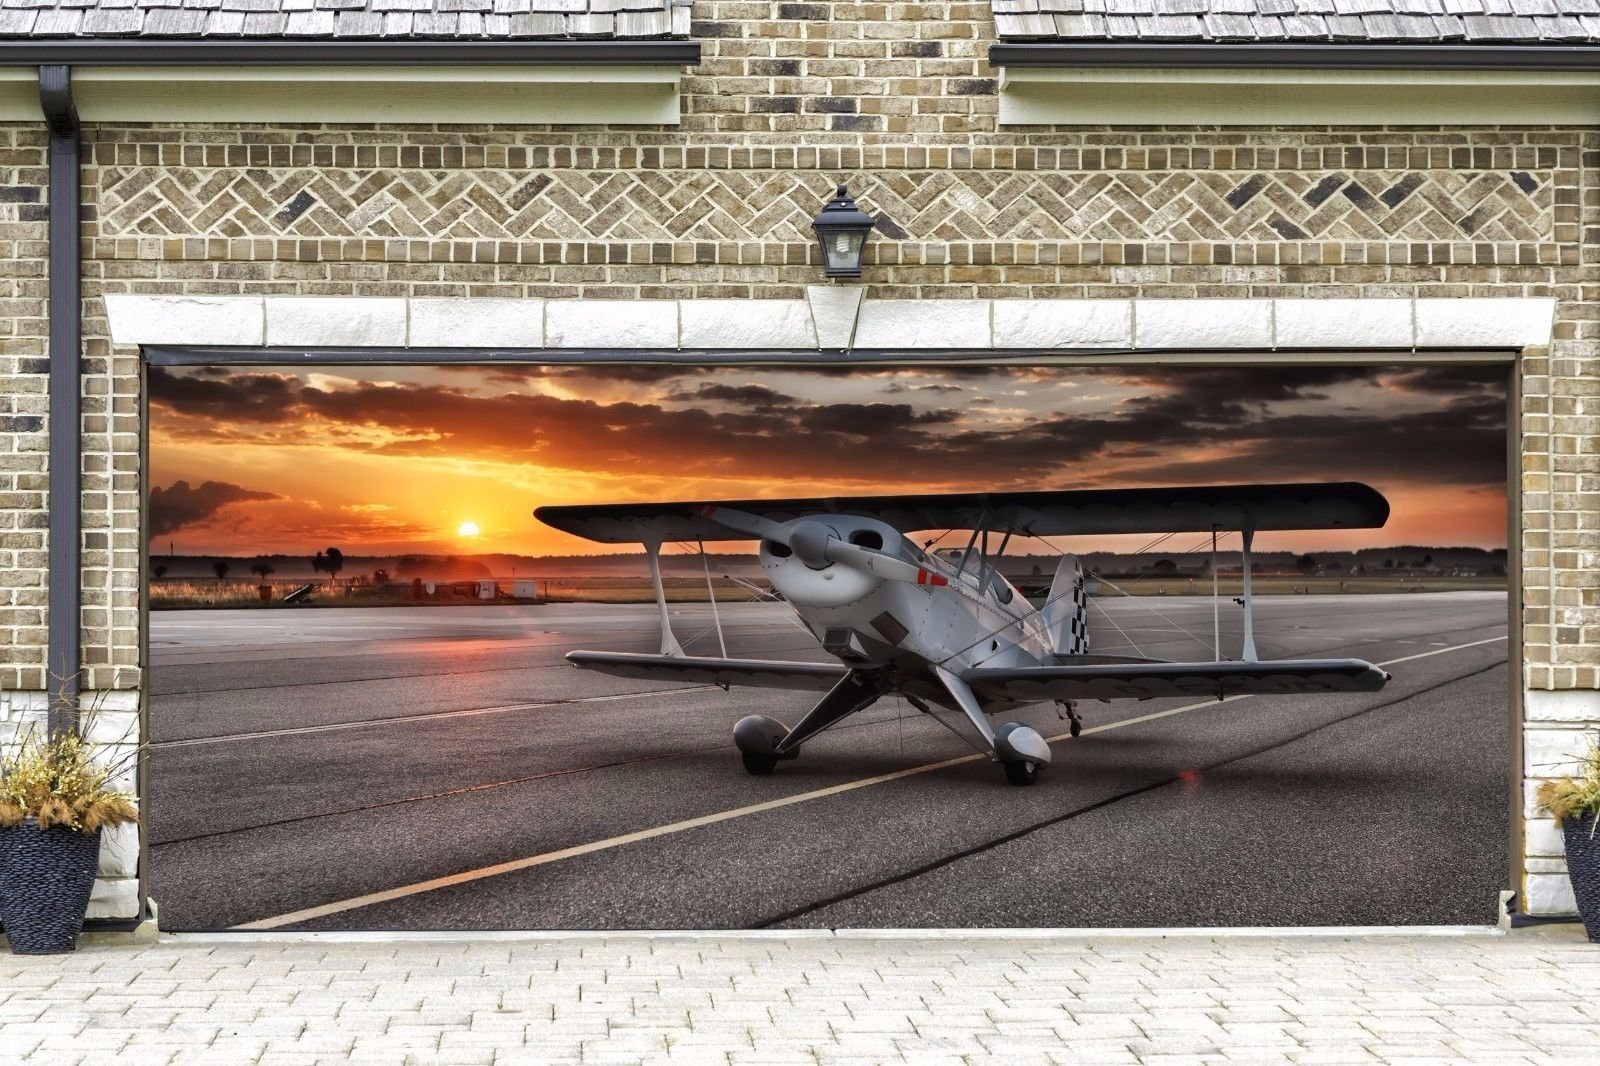 Real Looking Airplane Garage Door Outdoor Decor for 2 Car Billboard for House Cover Garage Door Decor Banner 3D Art Made in the USA Murals size 82x188 Dav86